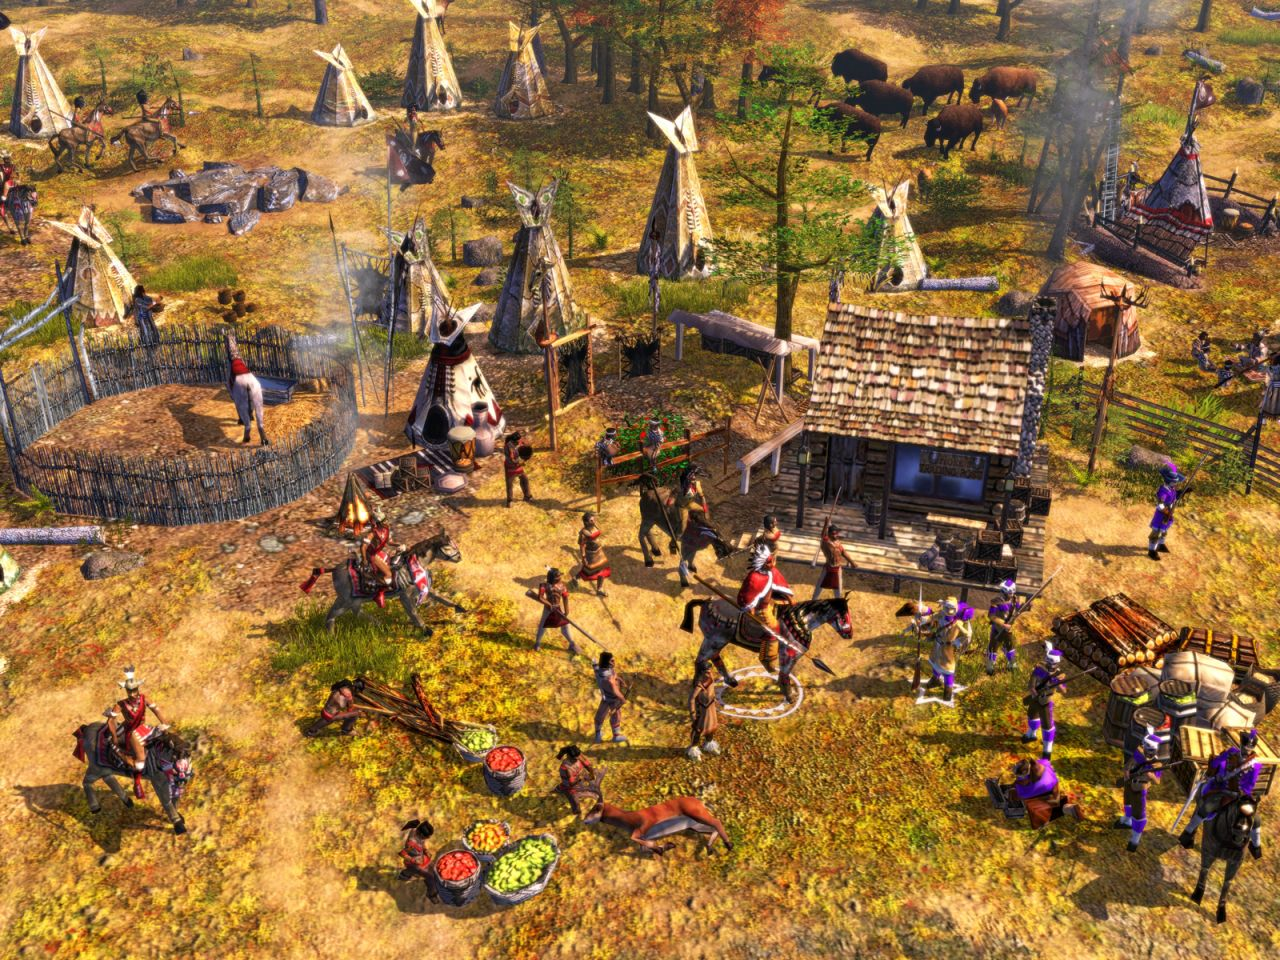 Age of empires i full version free download apexwallpapers com